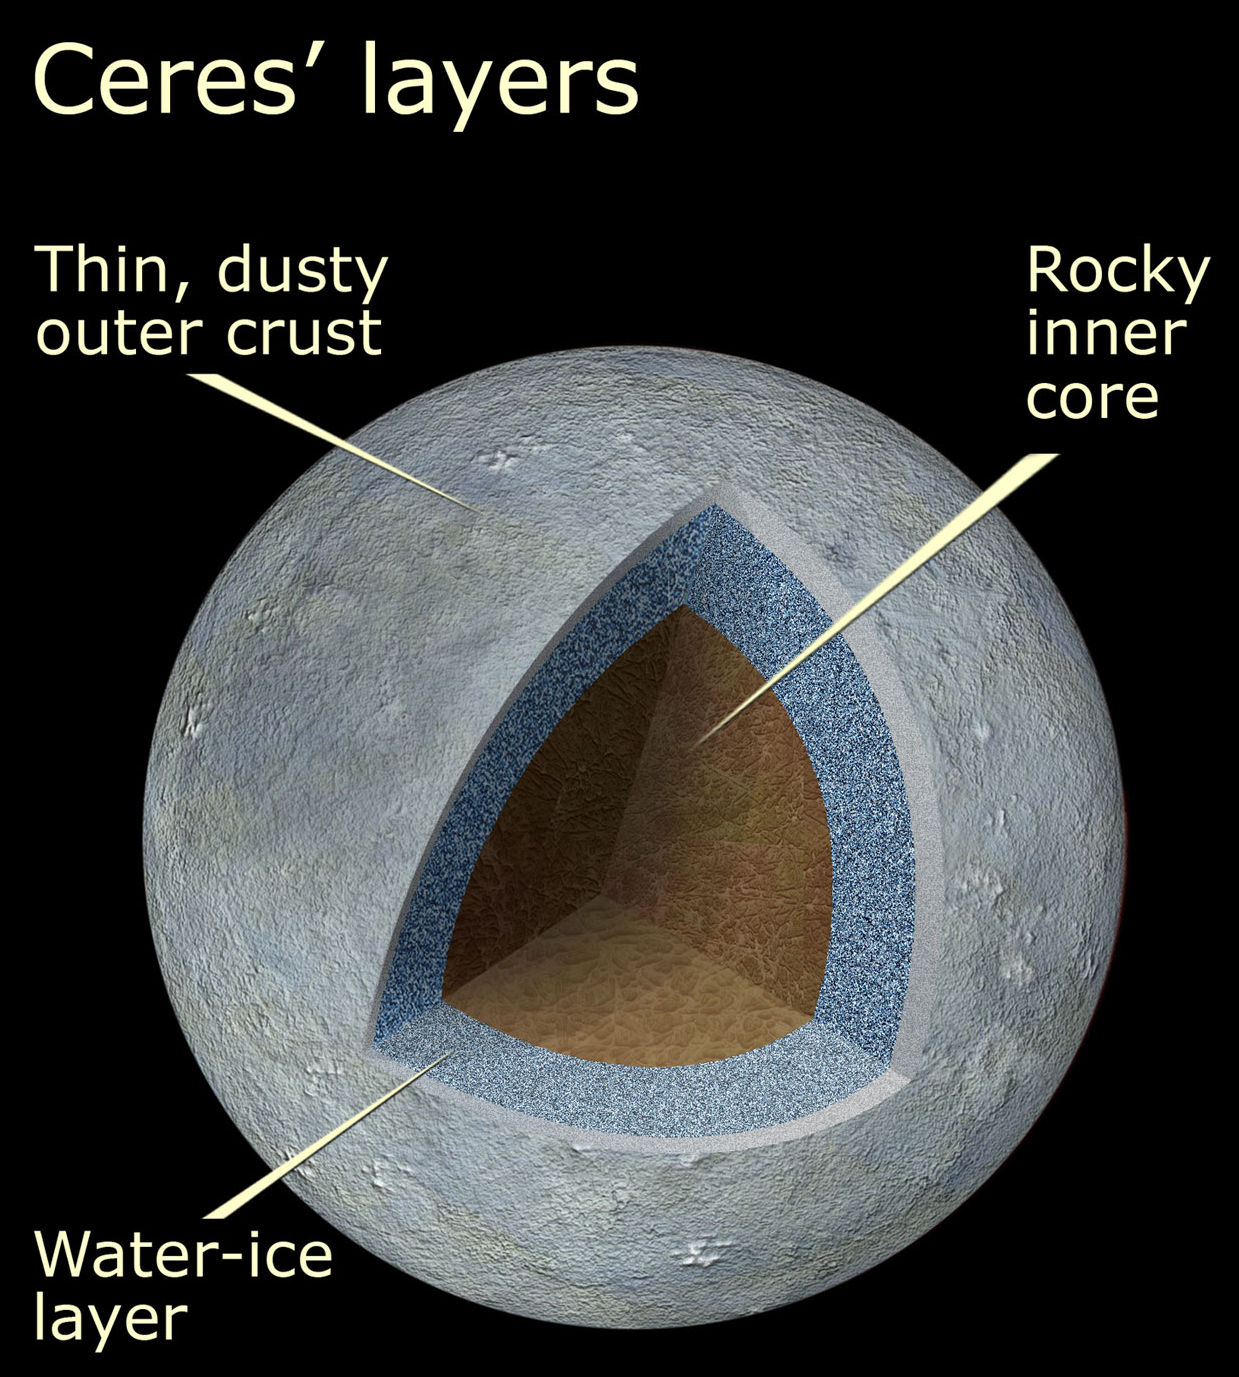 ceres dwarf planet ice icey rock rocky surface layers